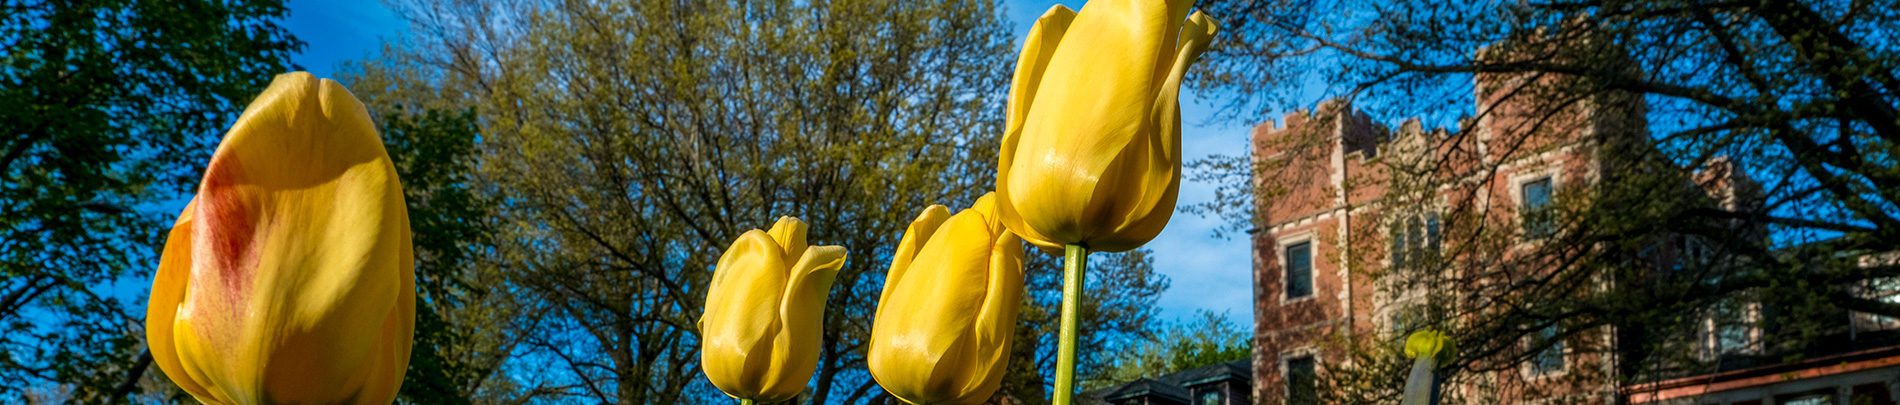 Yellow Tulips in the foreground with Gates Tower in the background.